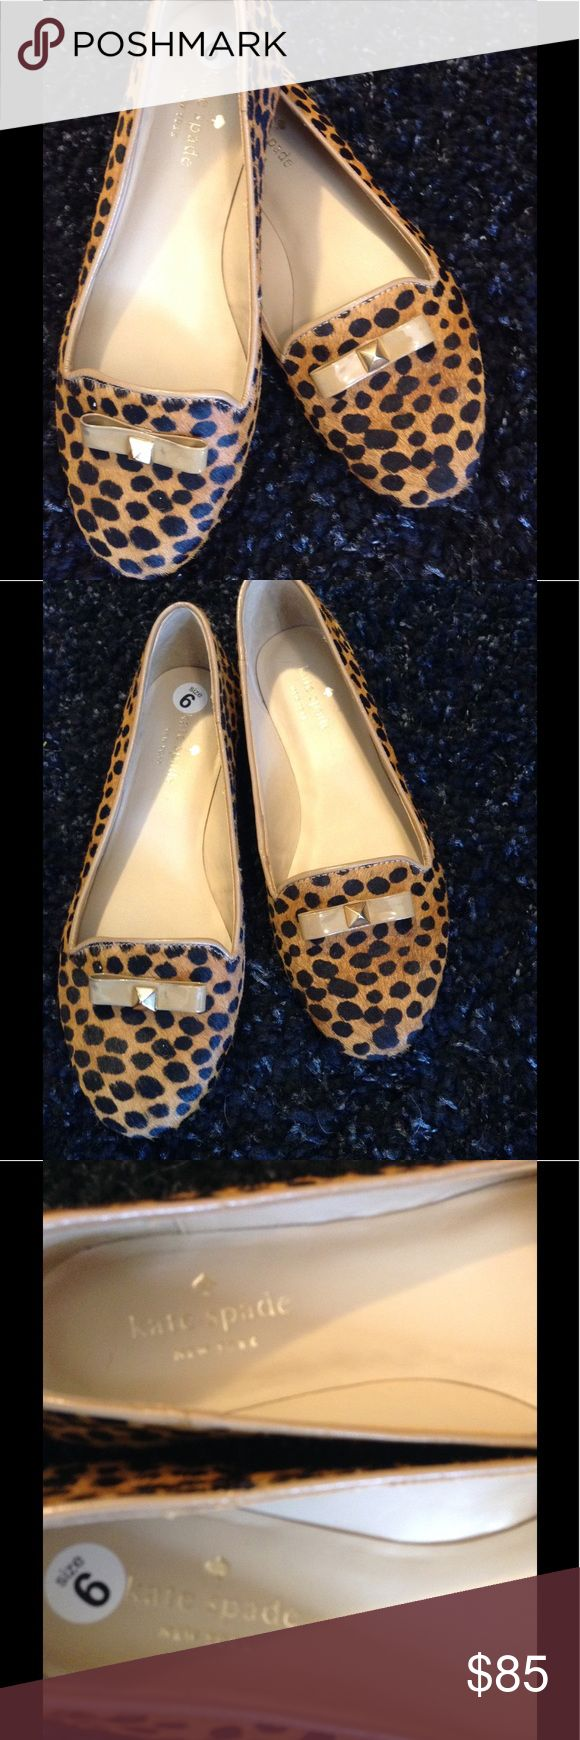 NWOB Kate Spade Animal Print flats Cheetah print flats with bow accent. Leather/calf hair, never worn just no box size 6 kate spade Shoes Flats & Loafers